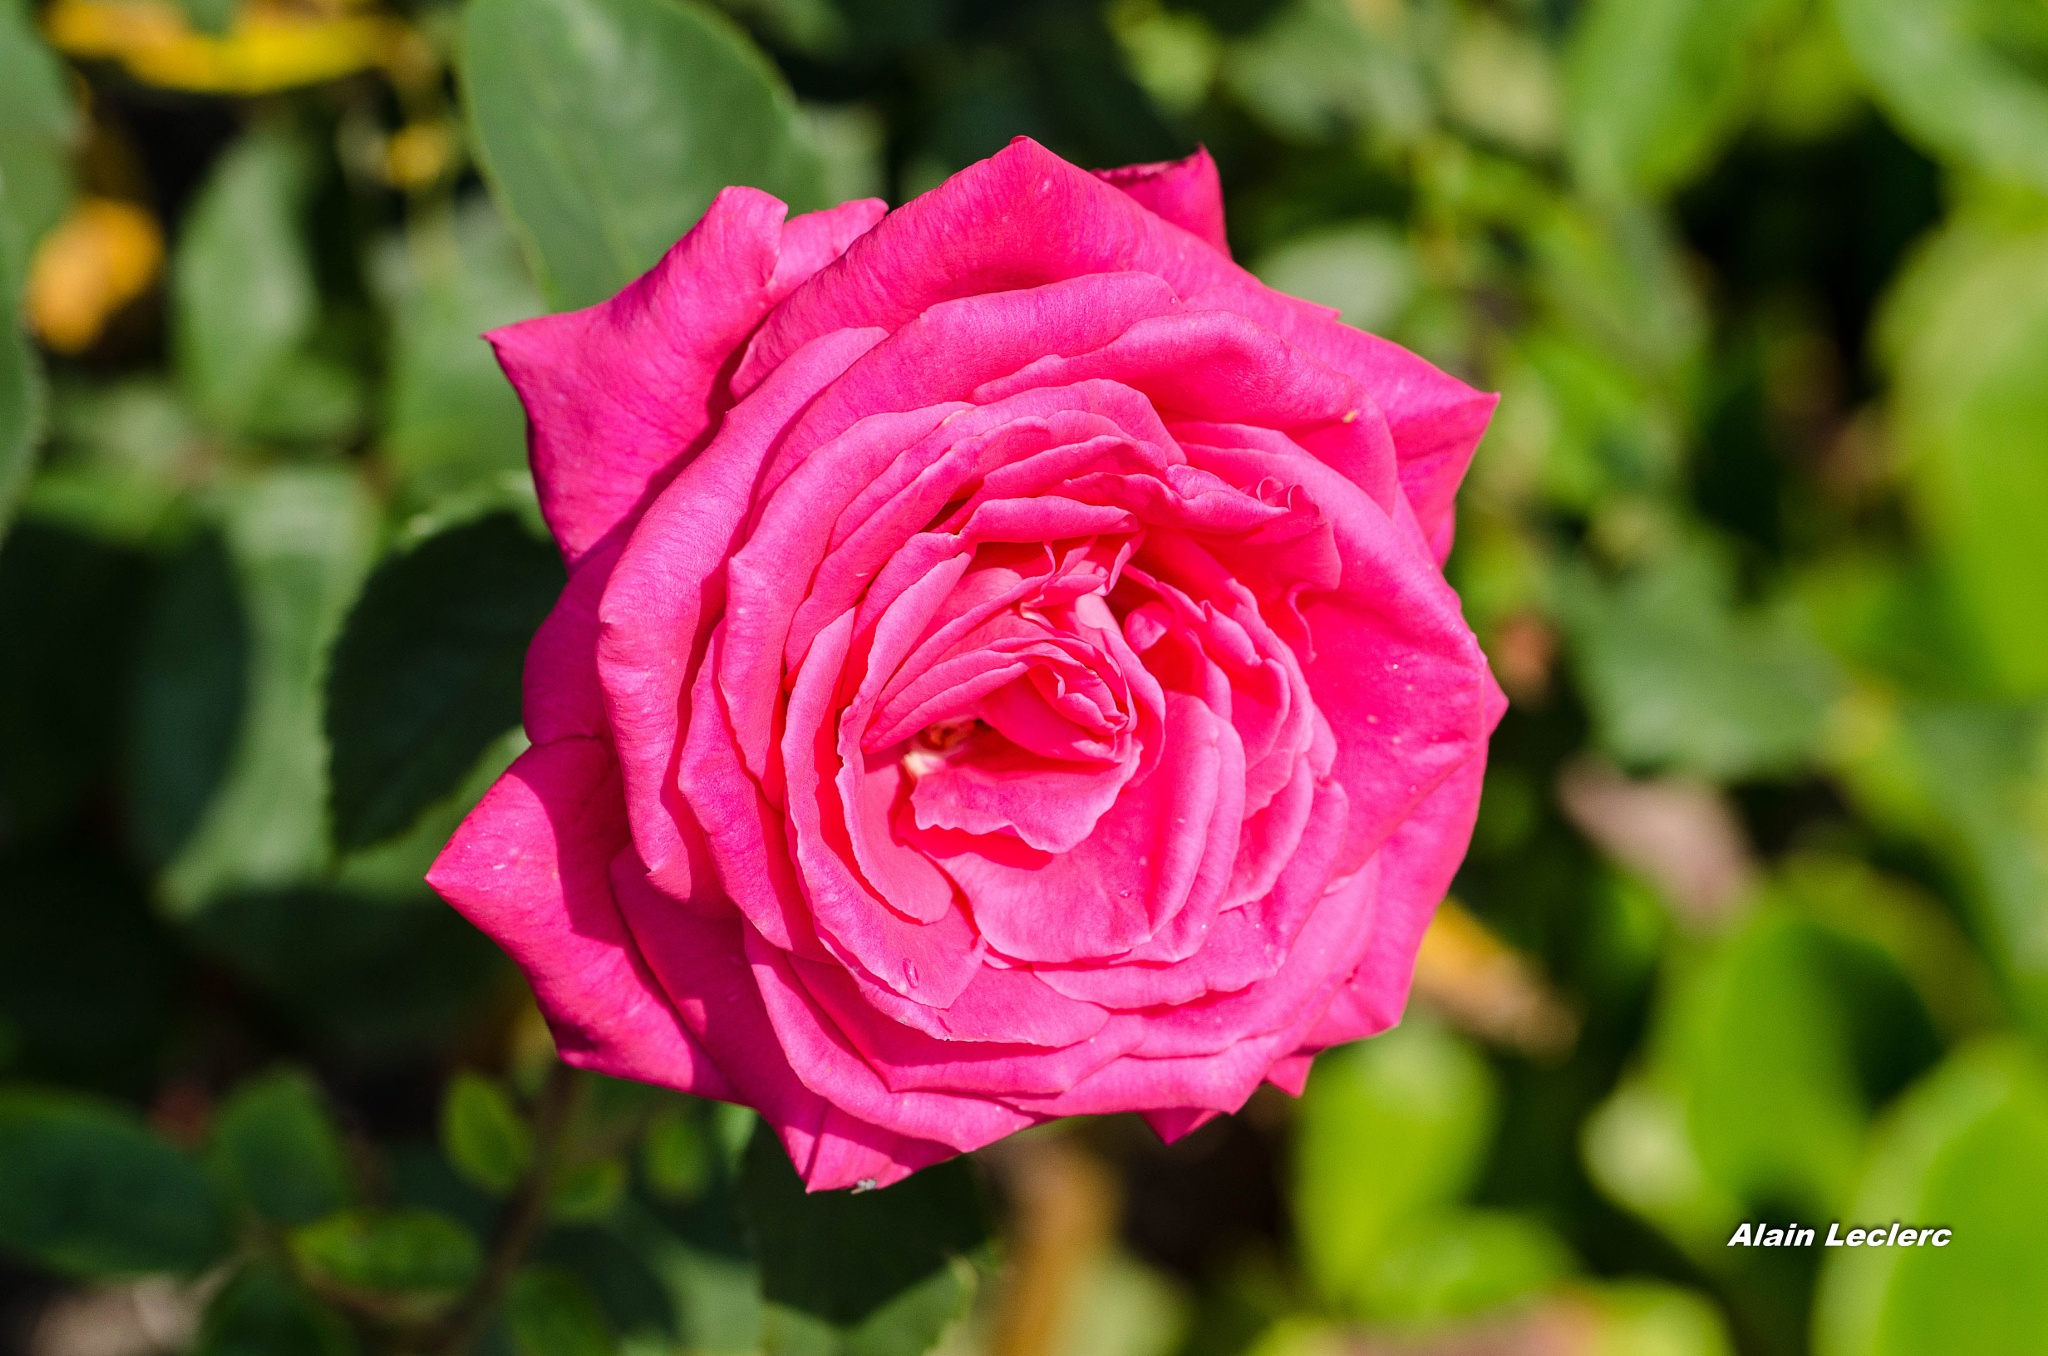 rose (5084) by leclercalainmail